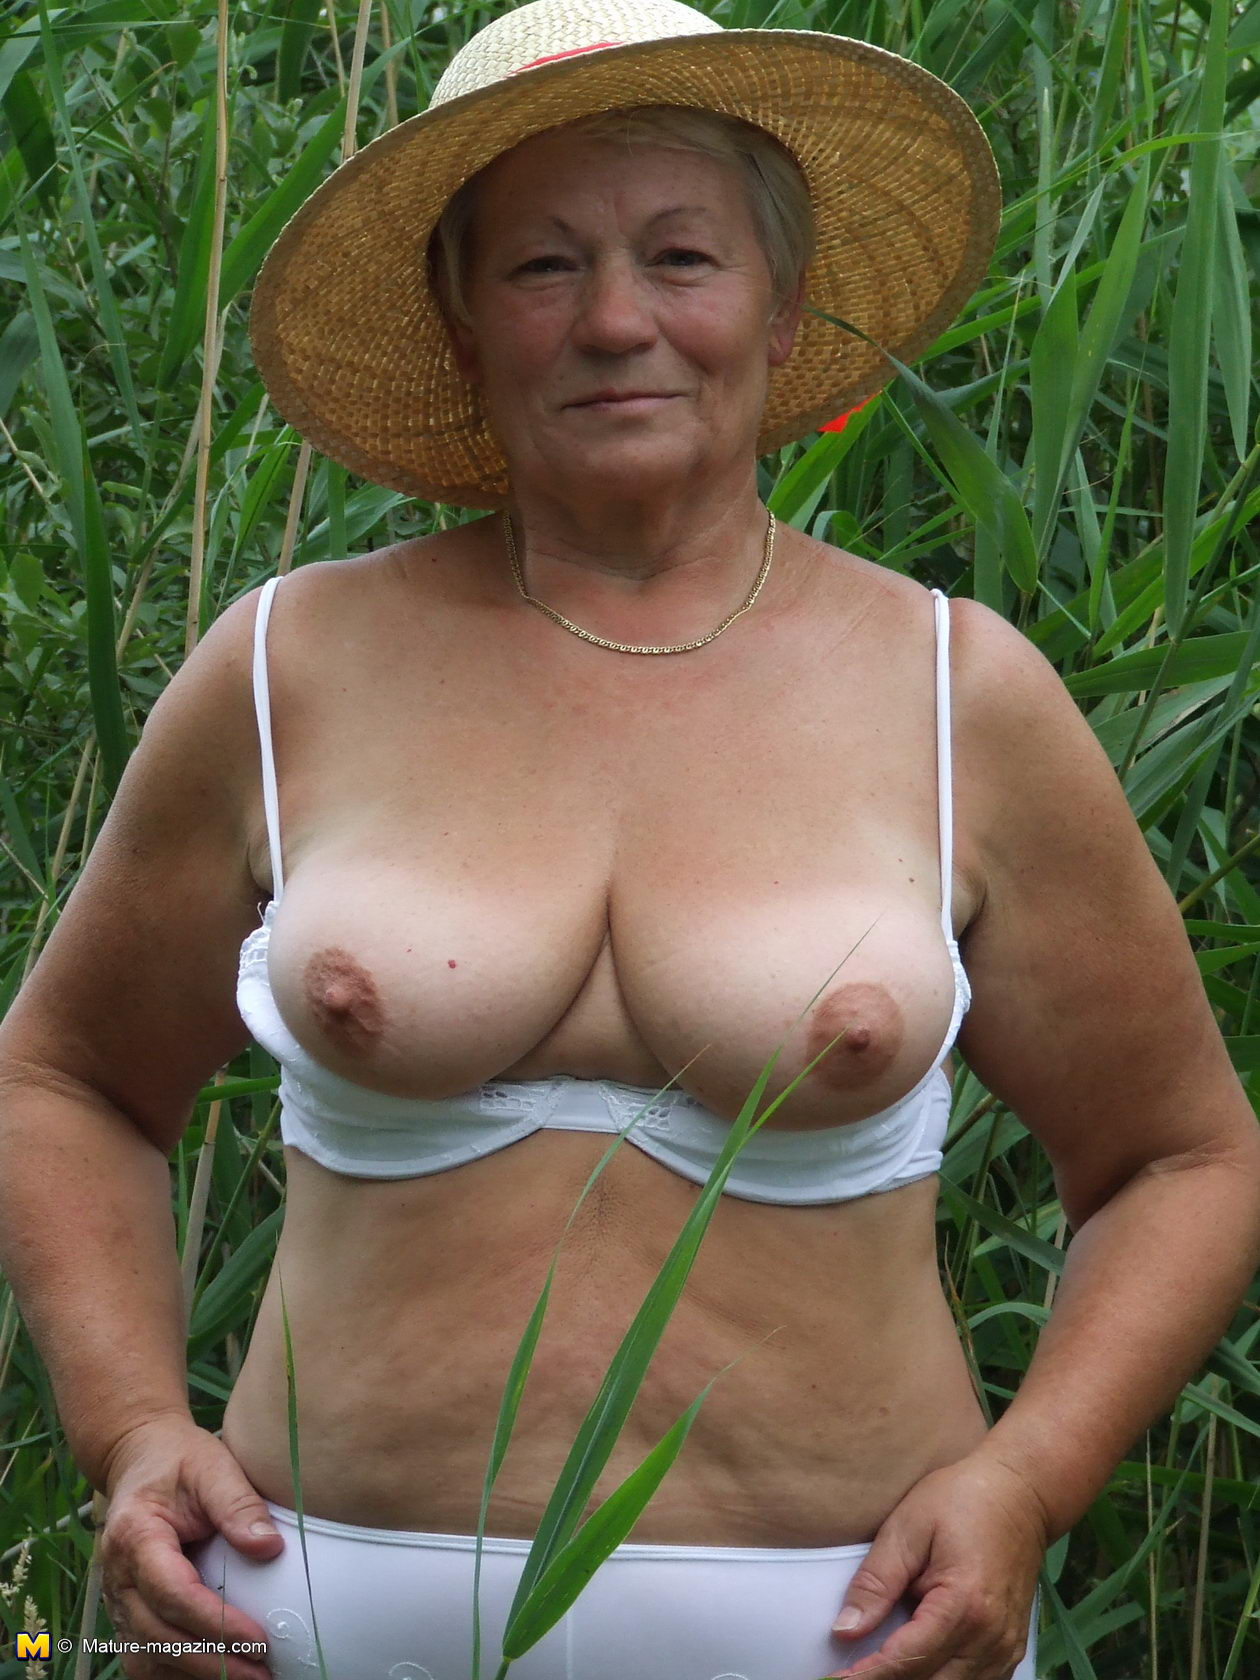 naughty mama playing with herself in the grass - grannypornpics